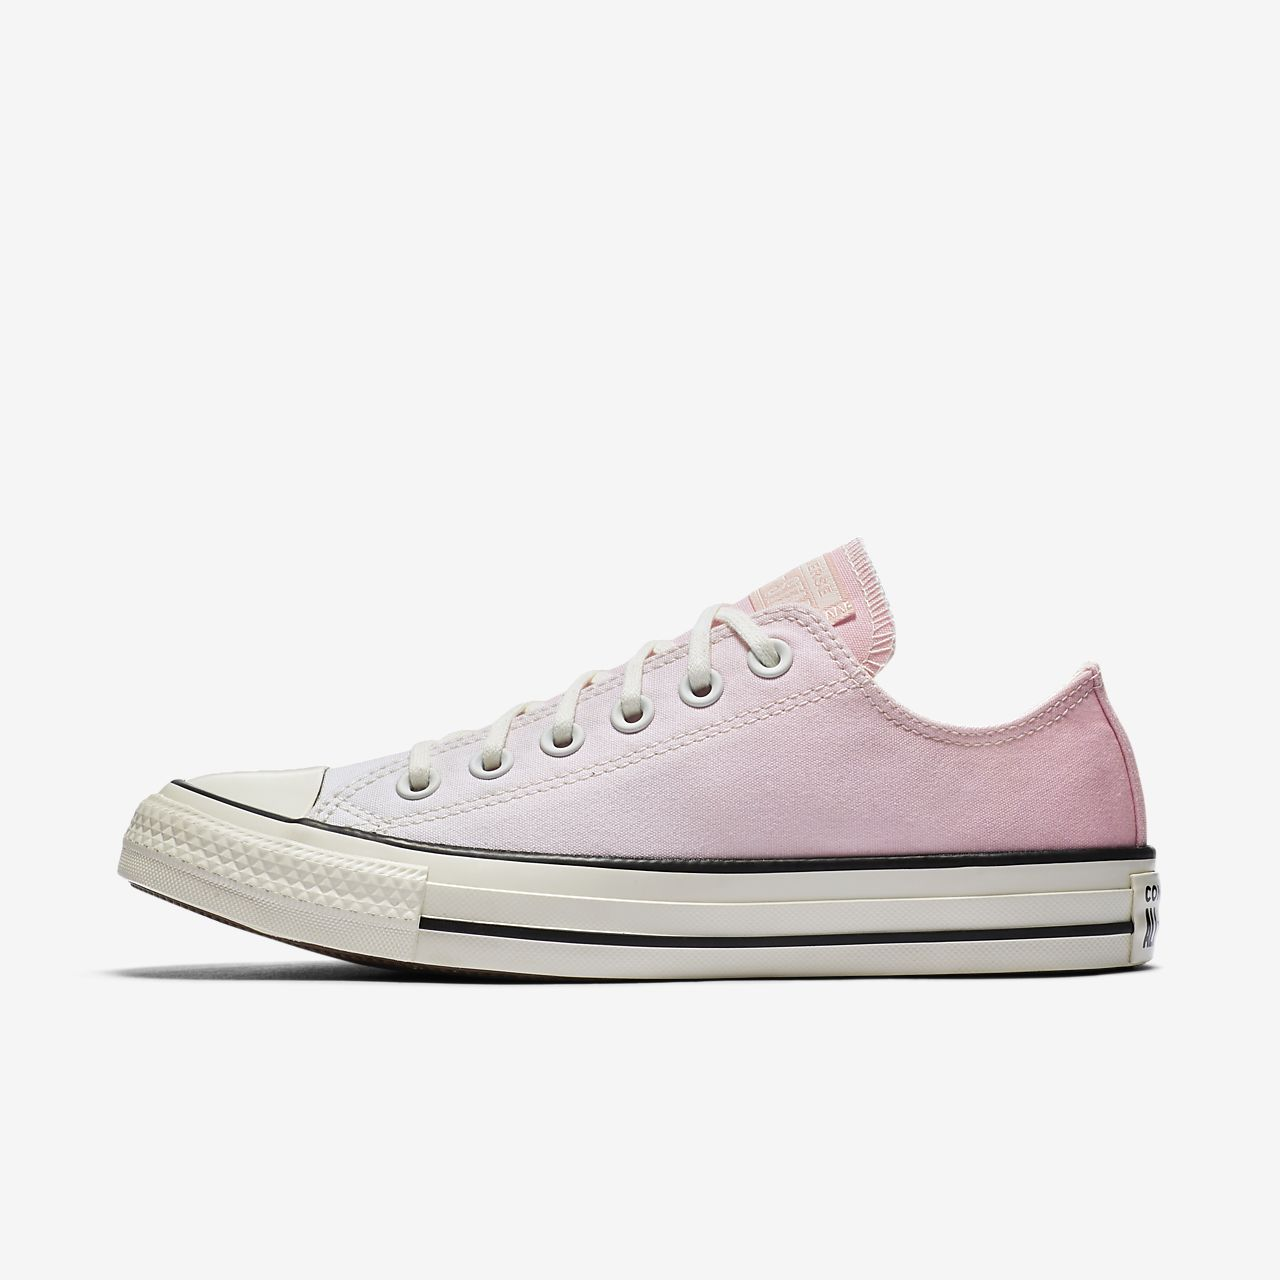 Converse Chuck Taylor All Star Ombre Wash Low Top Women's Shoe